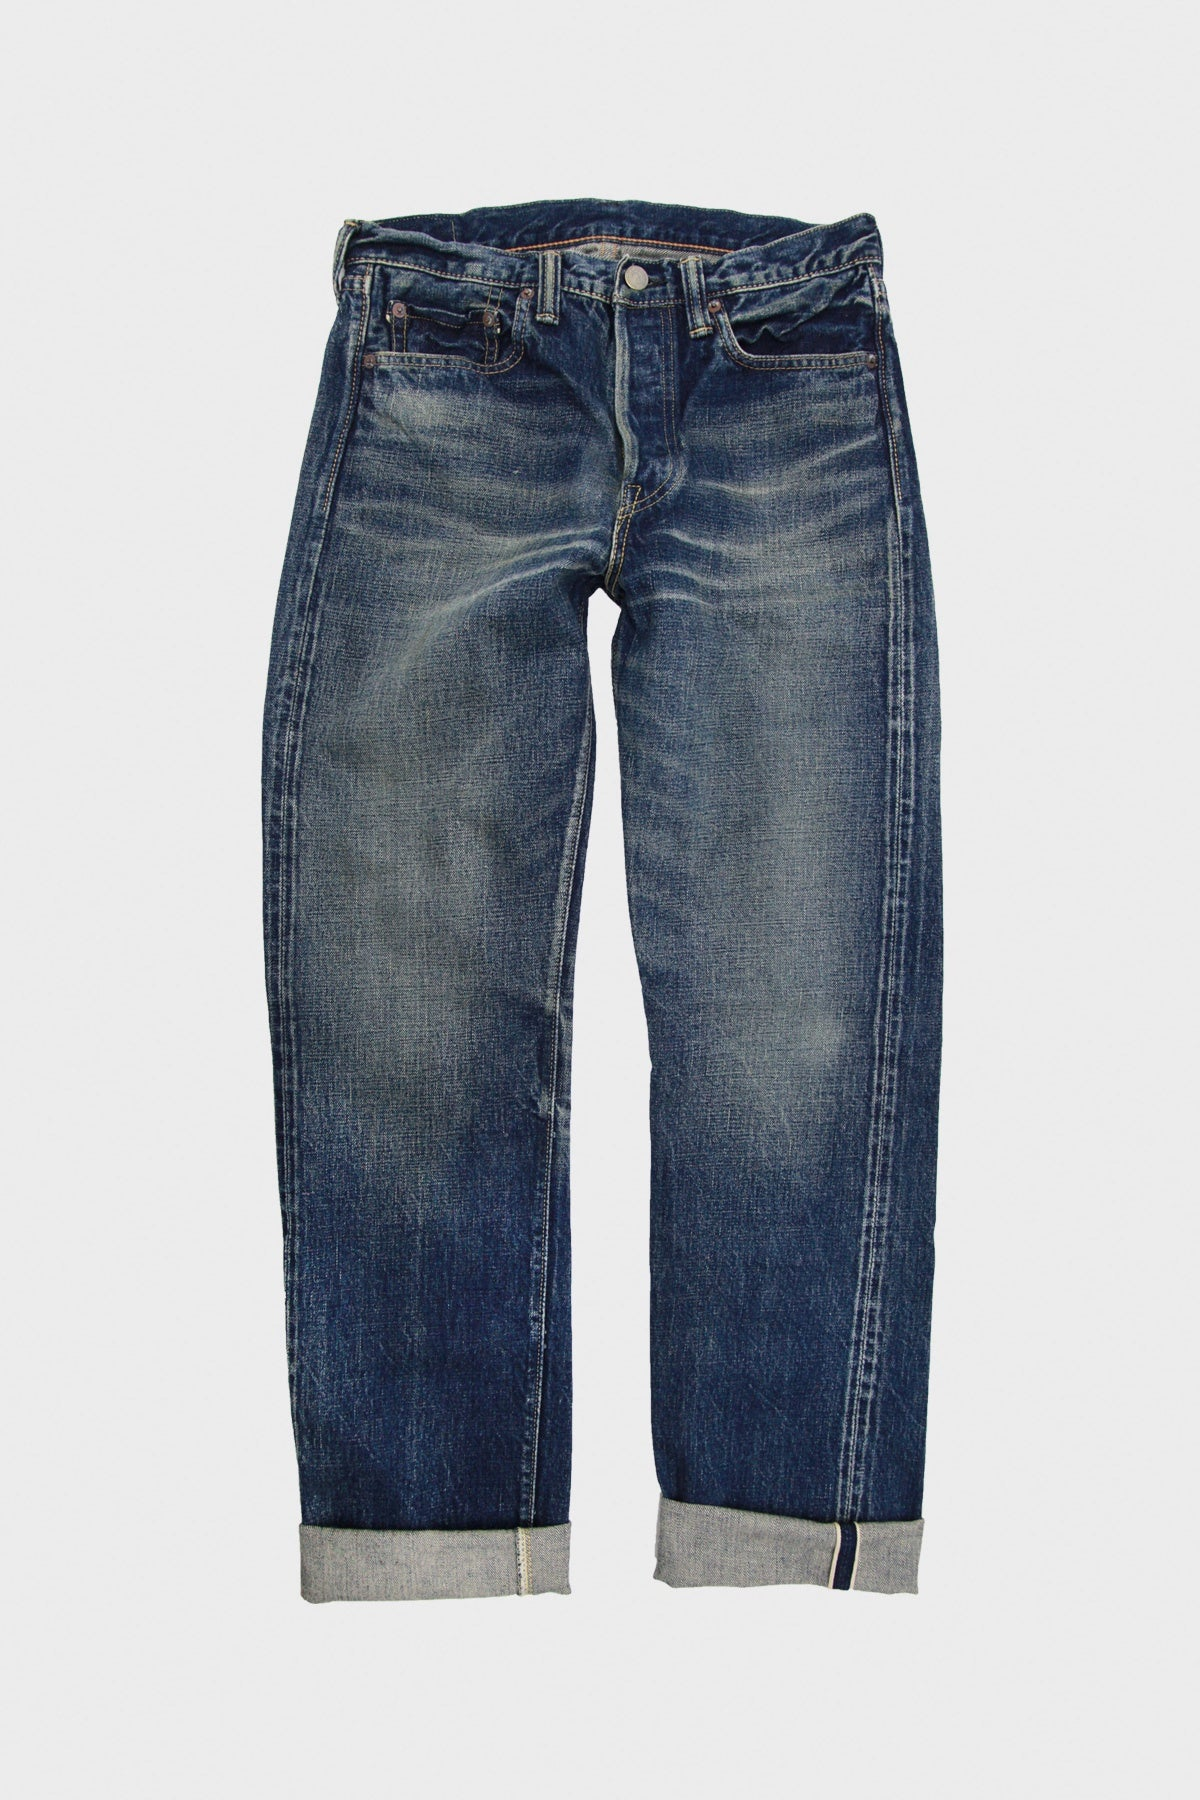 "Full Count - 1108 ""Real Killer 2"" - Washed Denim - Canoe Club"